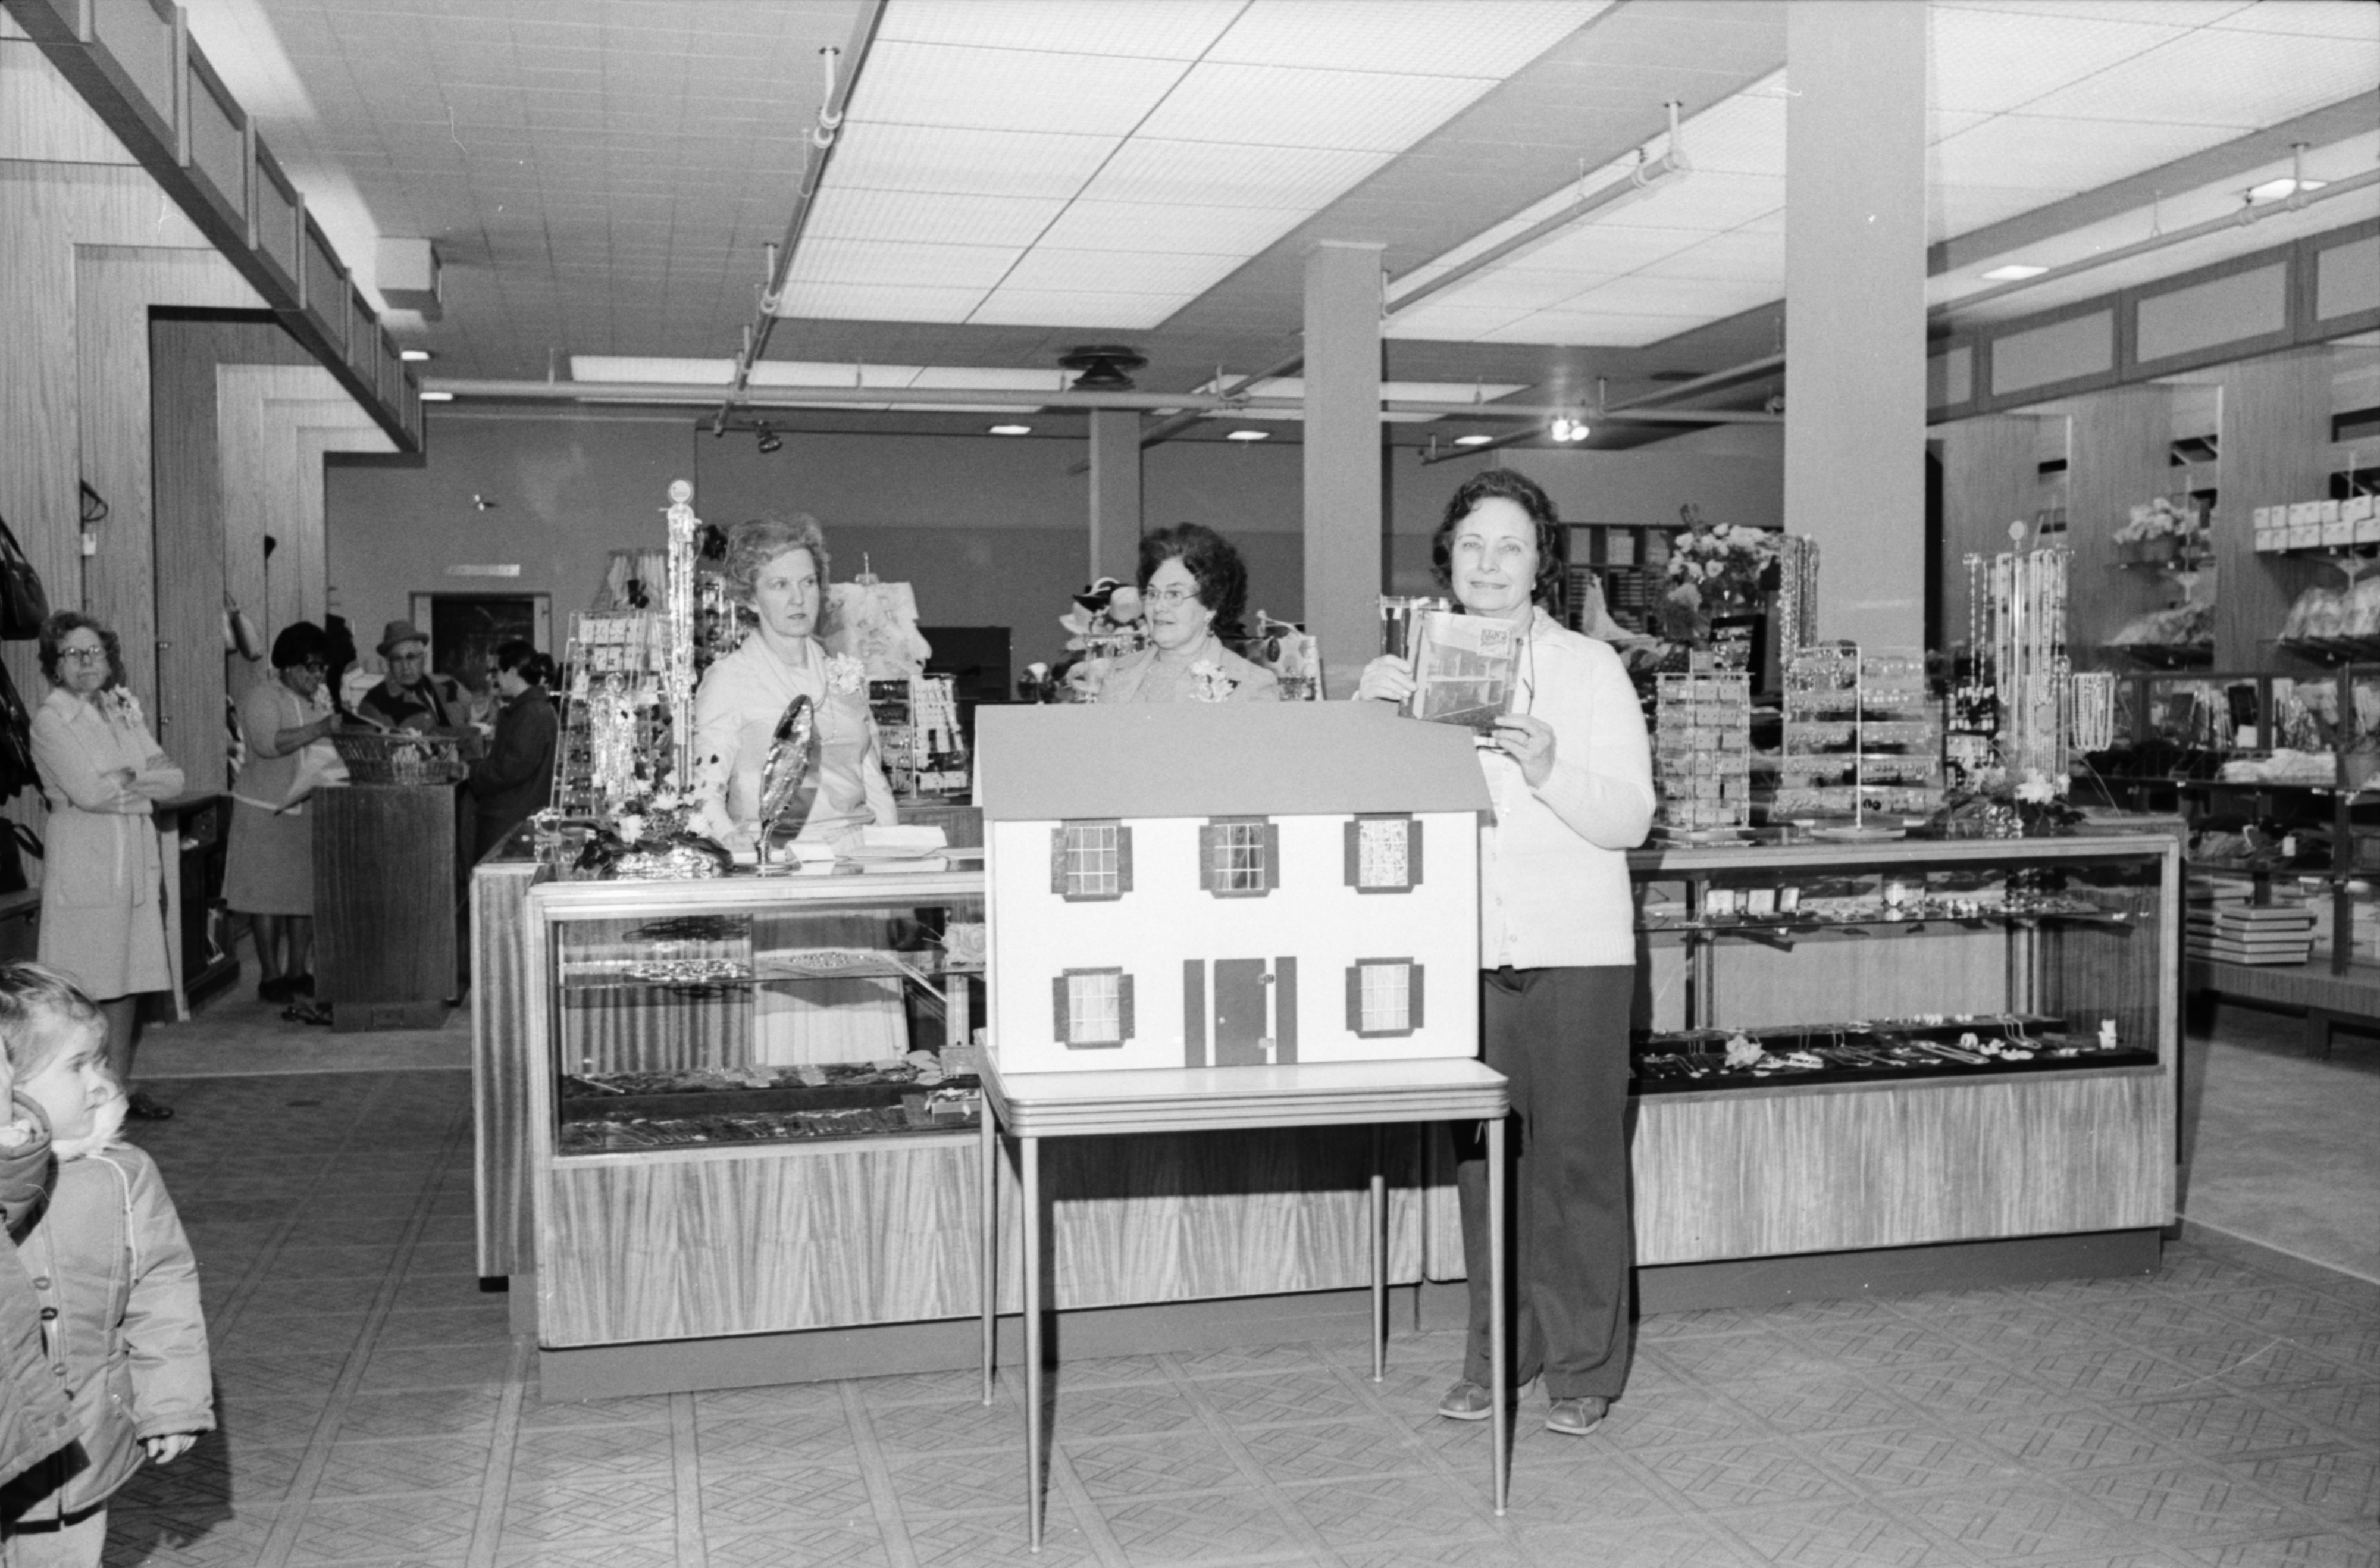 Goodyear's Department Store Remodeling Open House Includes A Doll House, March 1978 image